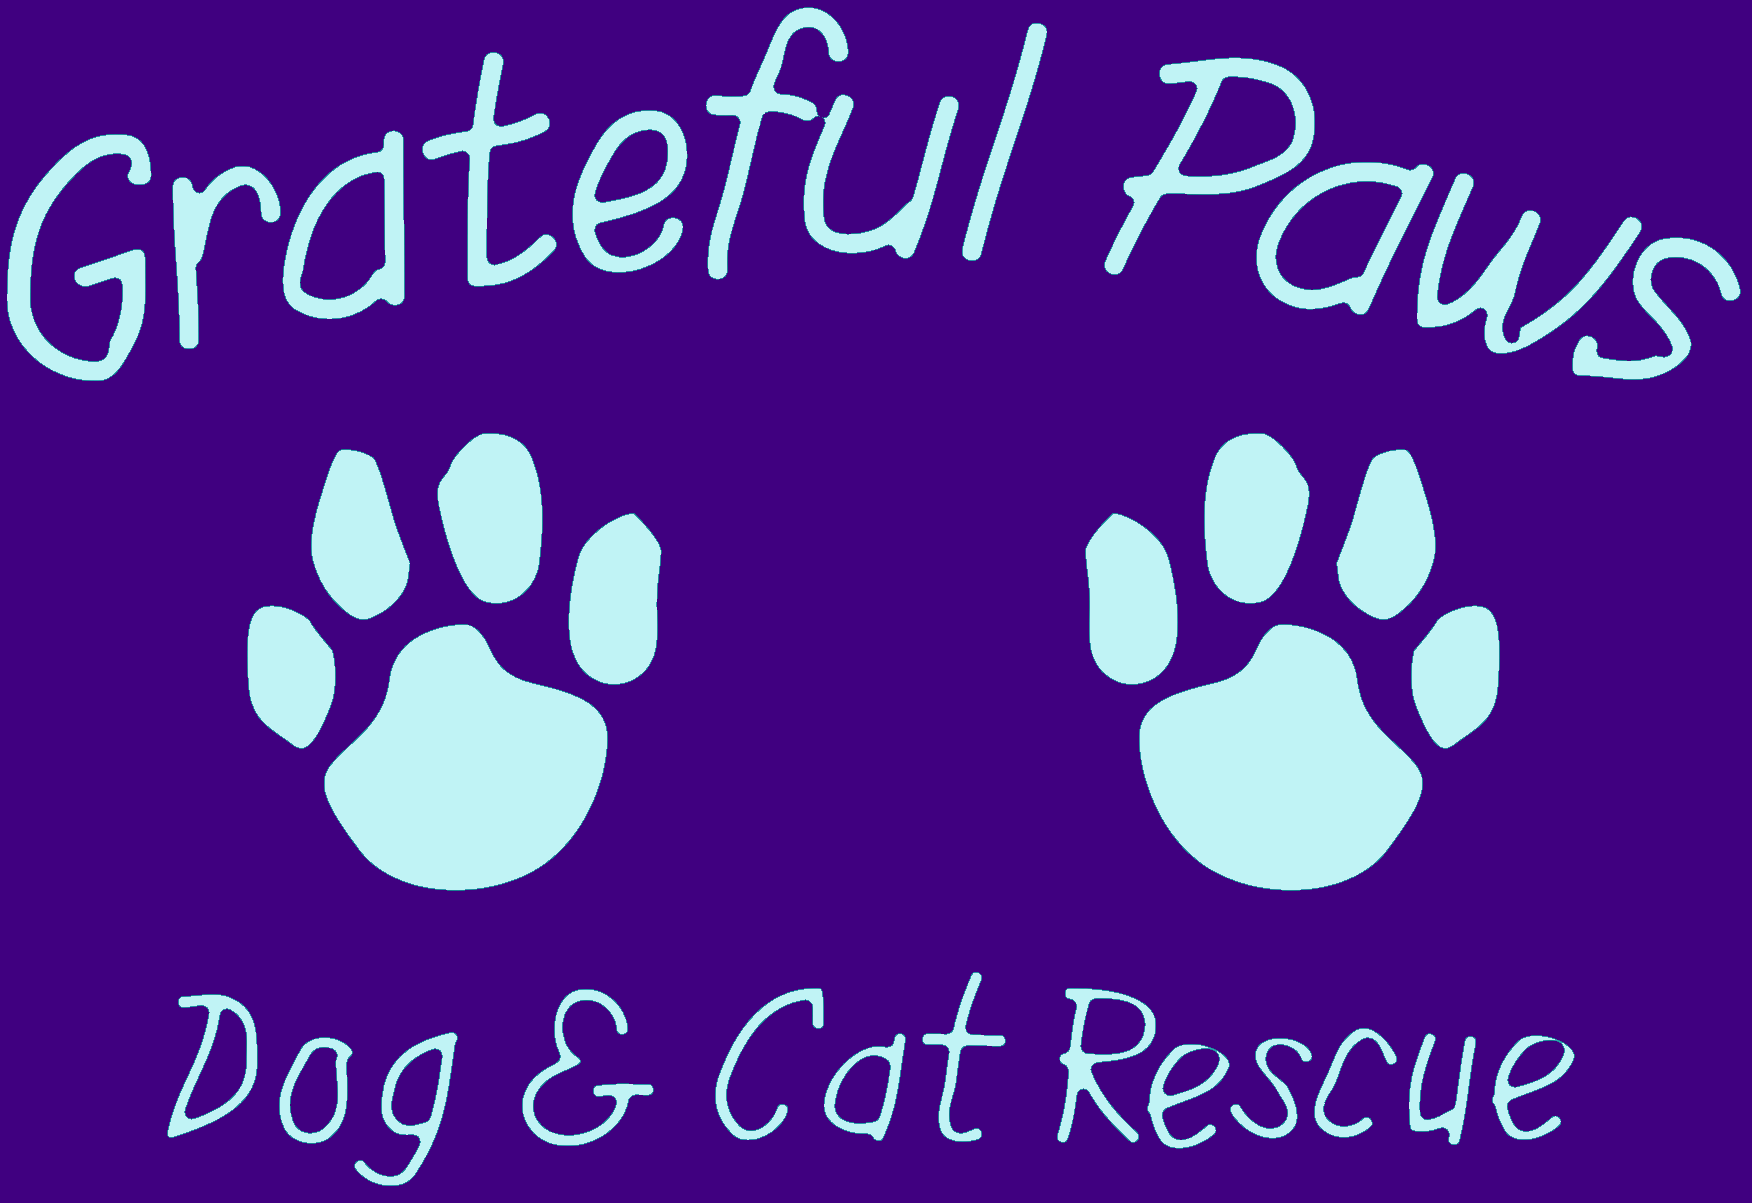 Grateful Paws Dog and Cat Rescue